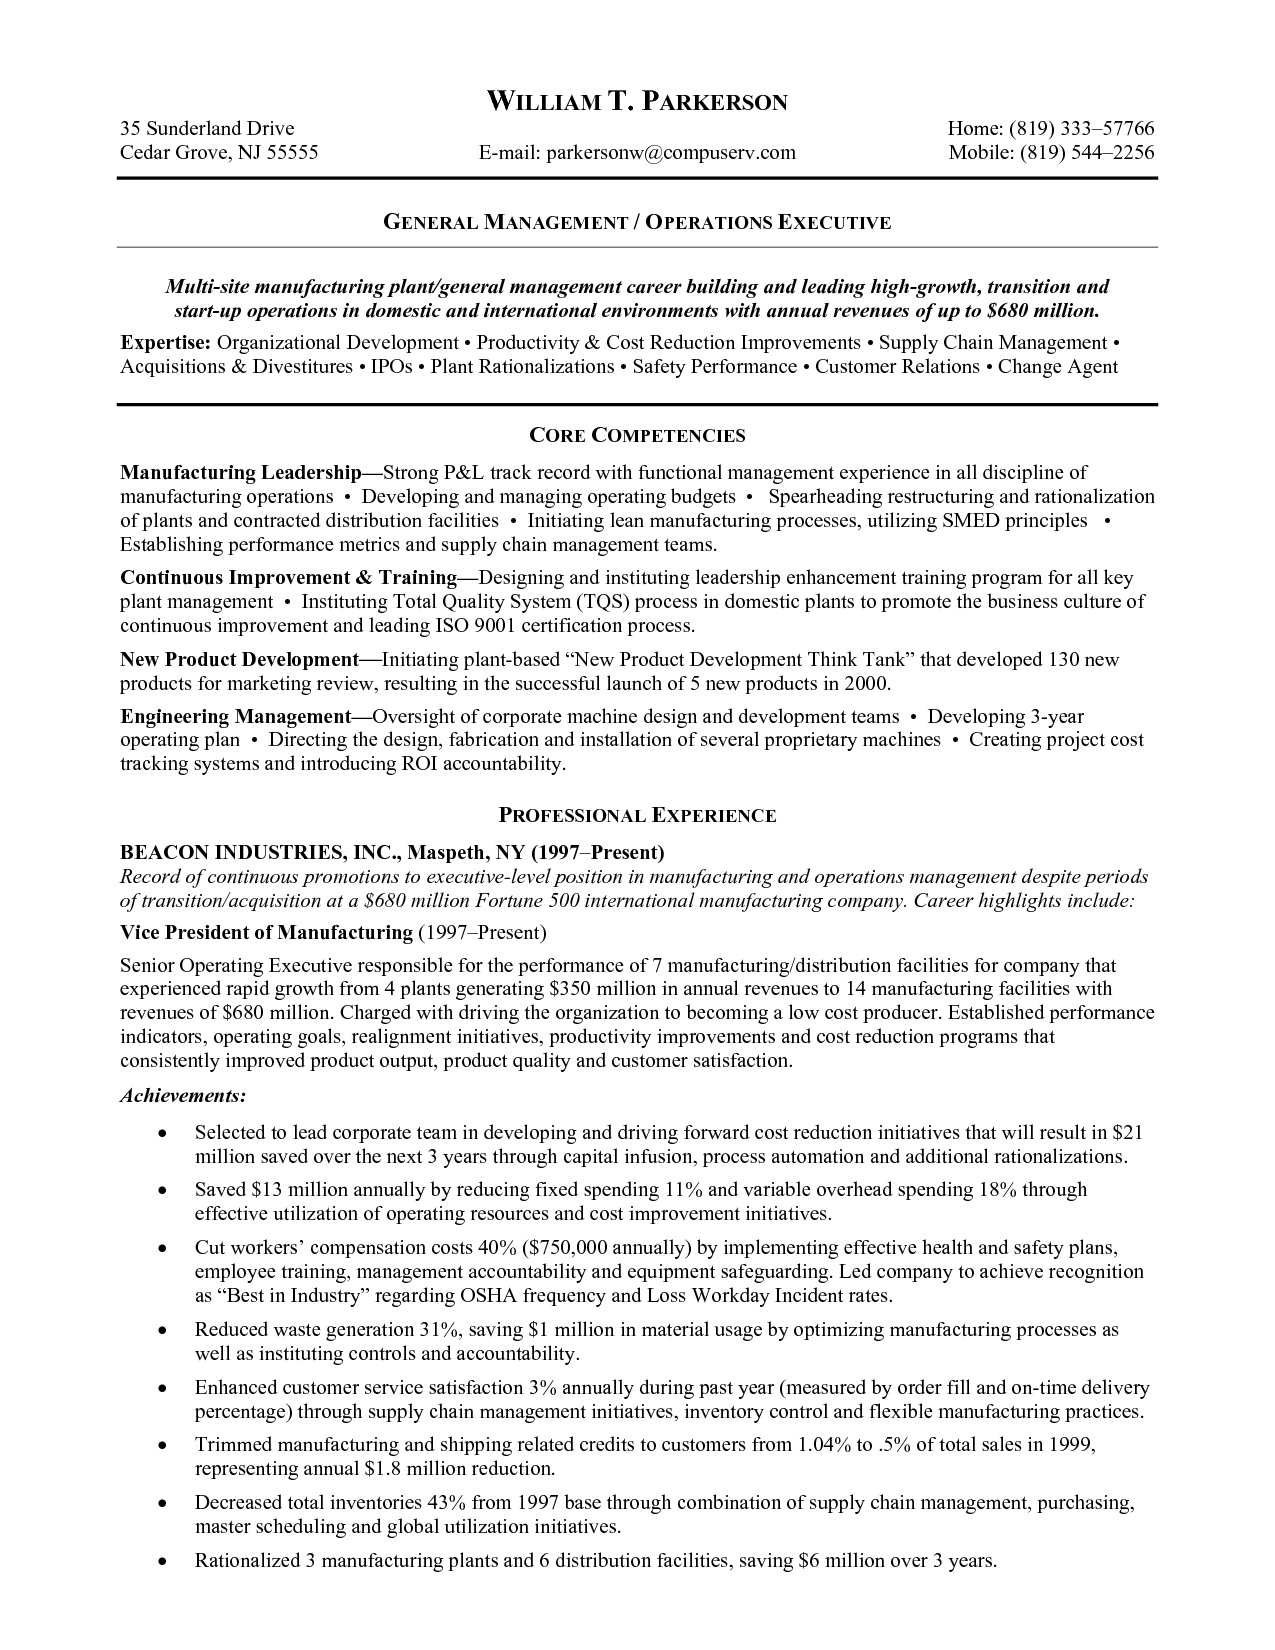 Example Resume Objective General Manufacturing Resume Samples Objective Examples Free Edit